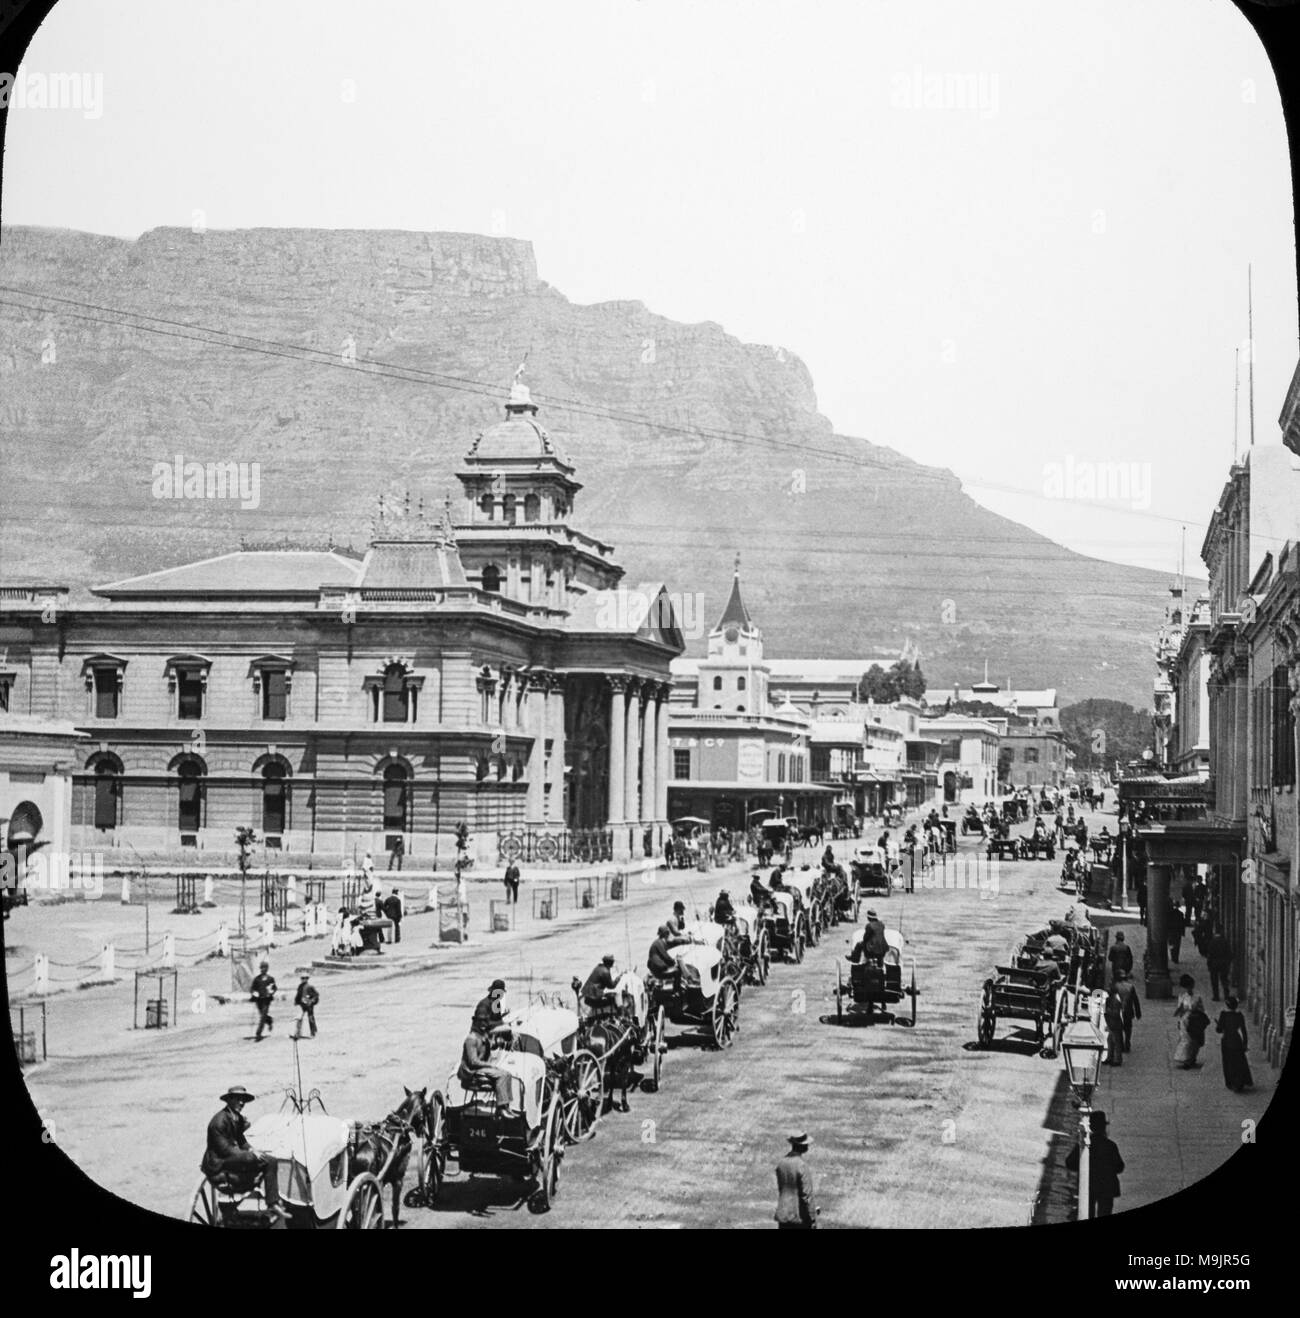 Johannesburg in South Africa in the late 1800s during the Gold Rush years which helped to establish the town of Johannesburg Stock Photo